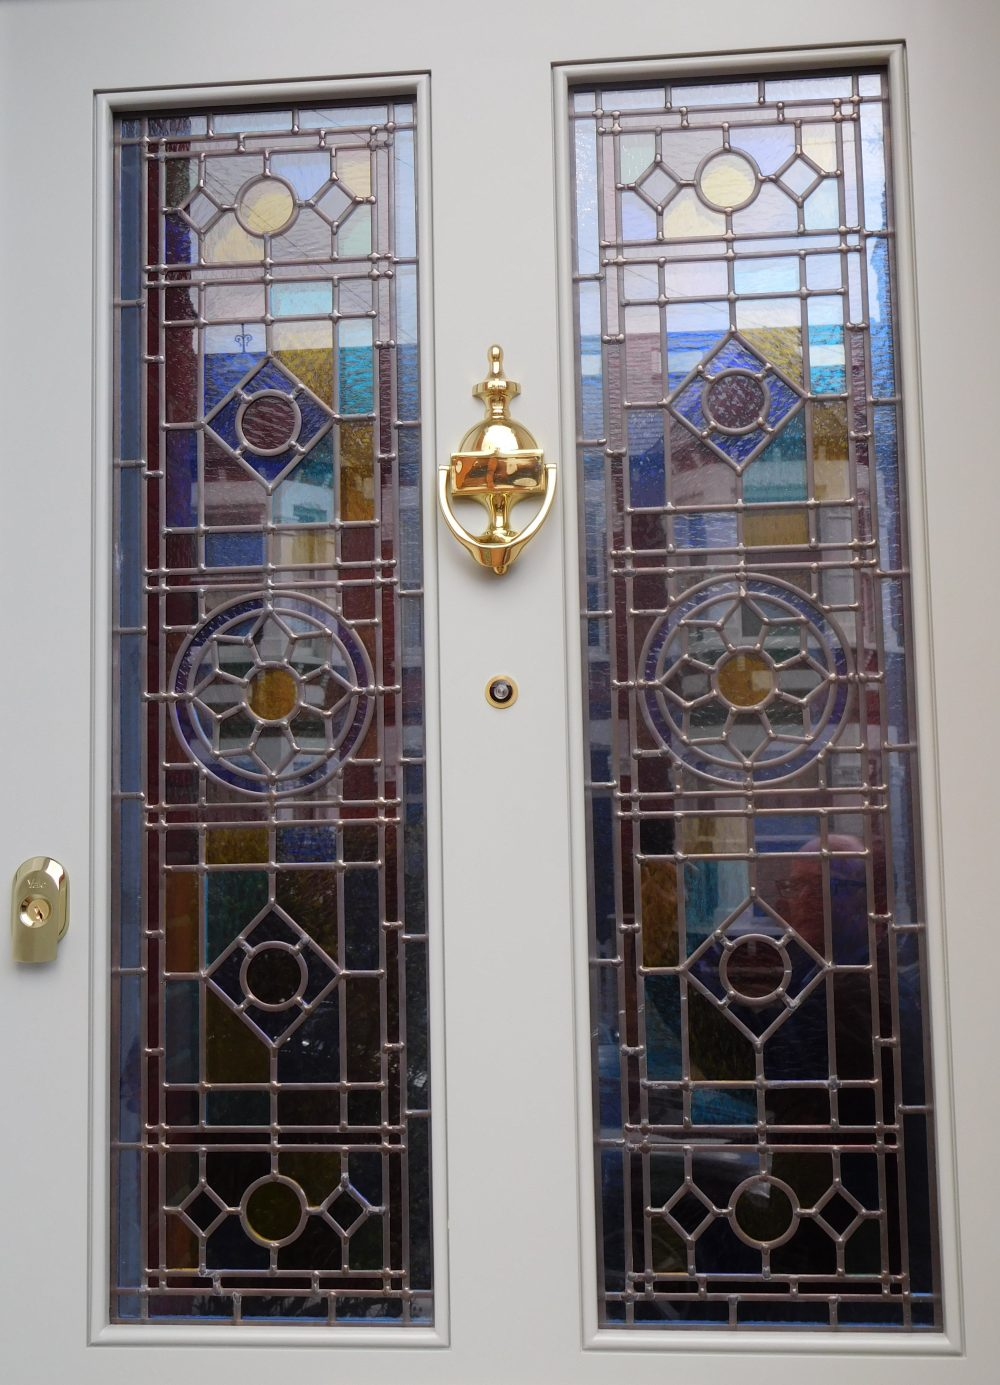 Le Meilleur Stained Glass Sps Timber Windows Ce Mois Ci